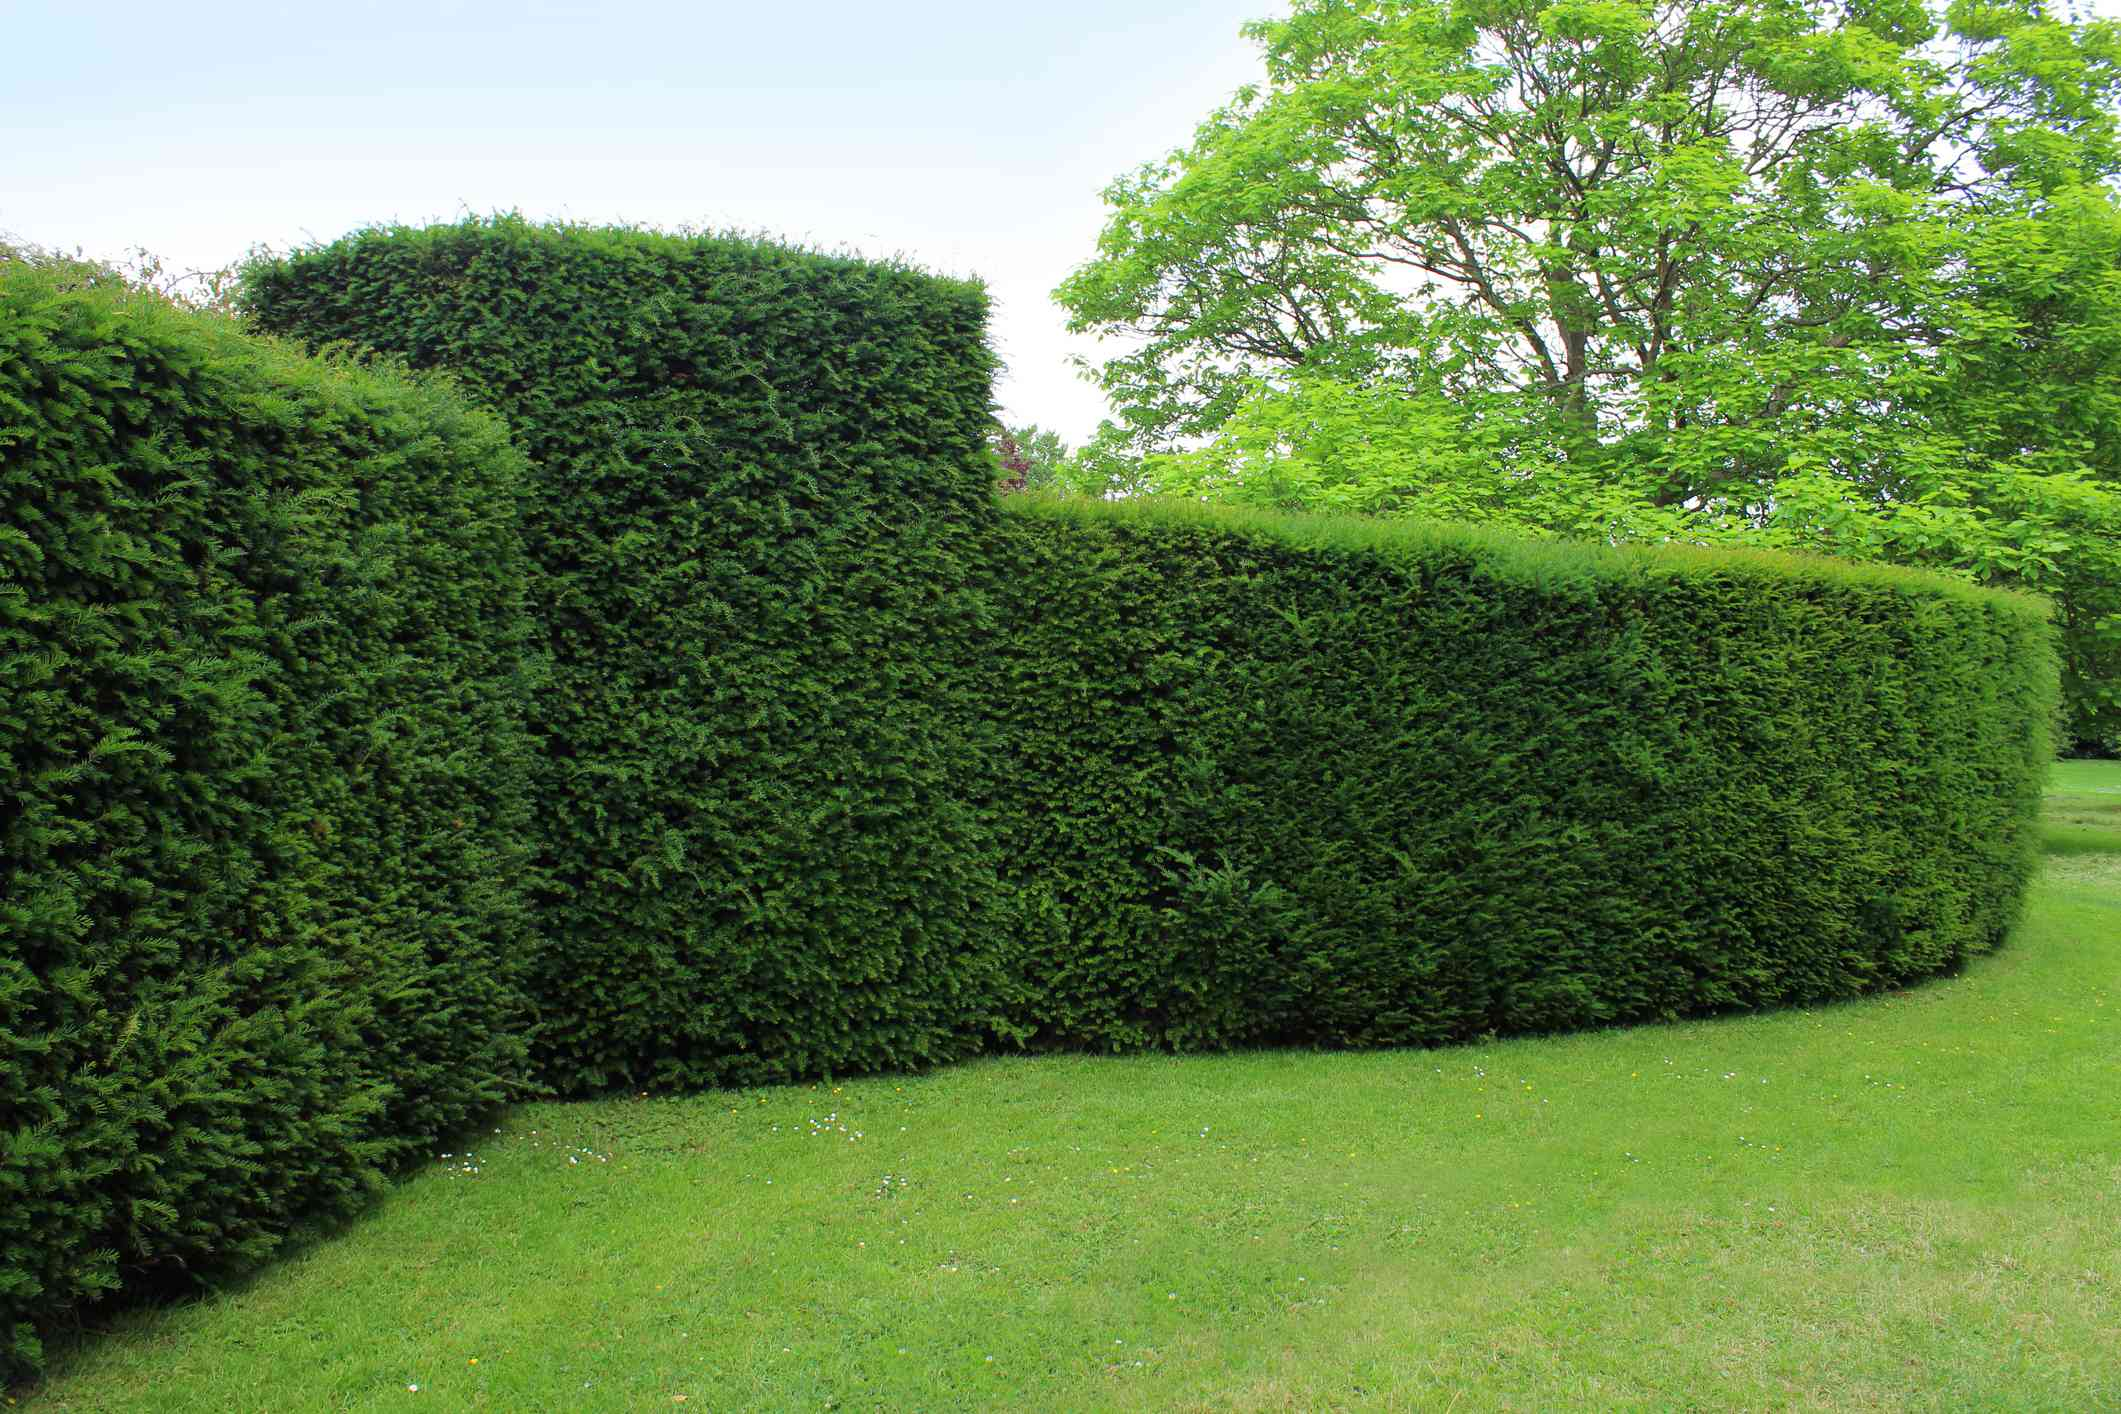 Clipped English yew hedge in a garden